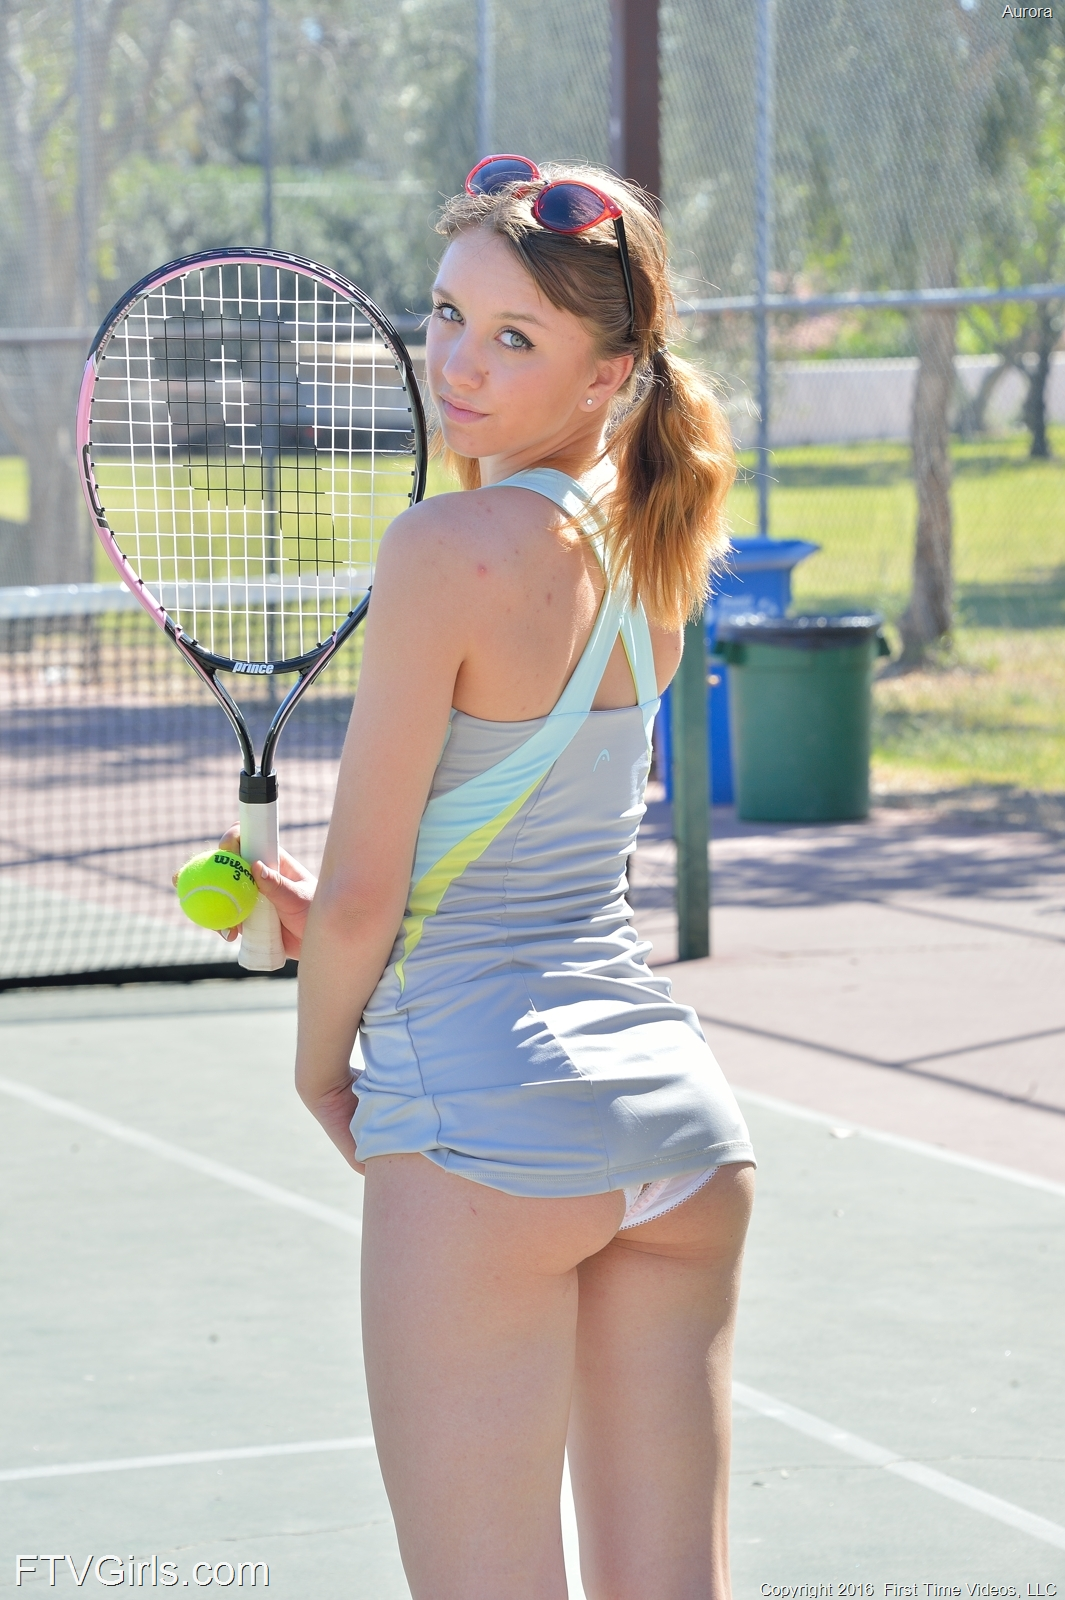 Ftv Girls Aurora-Ii Kinky On The Court - Ftvgirlscom-1500